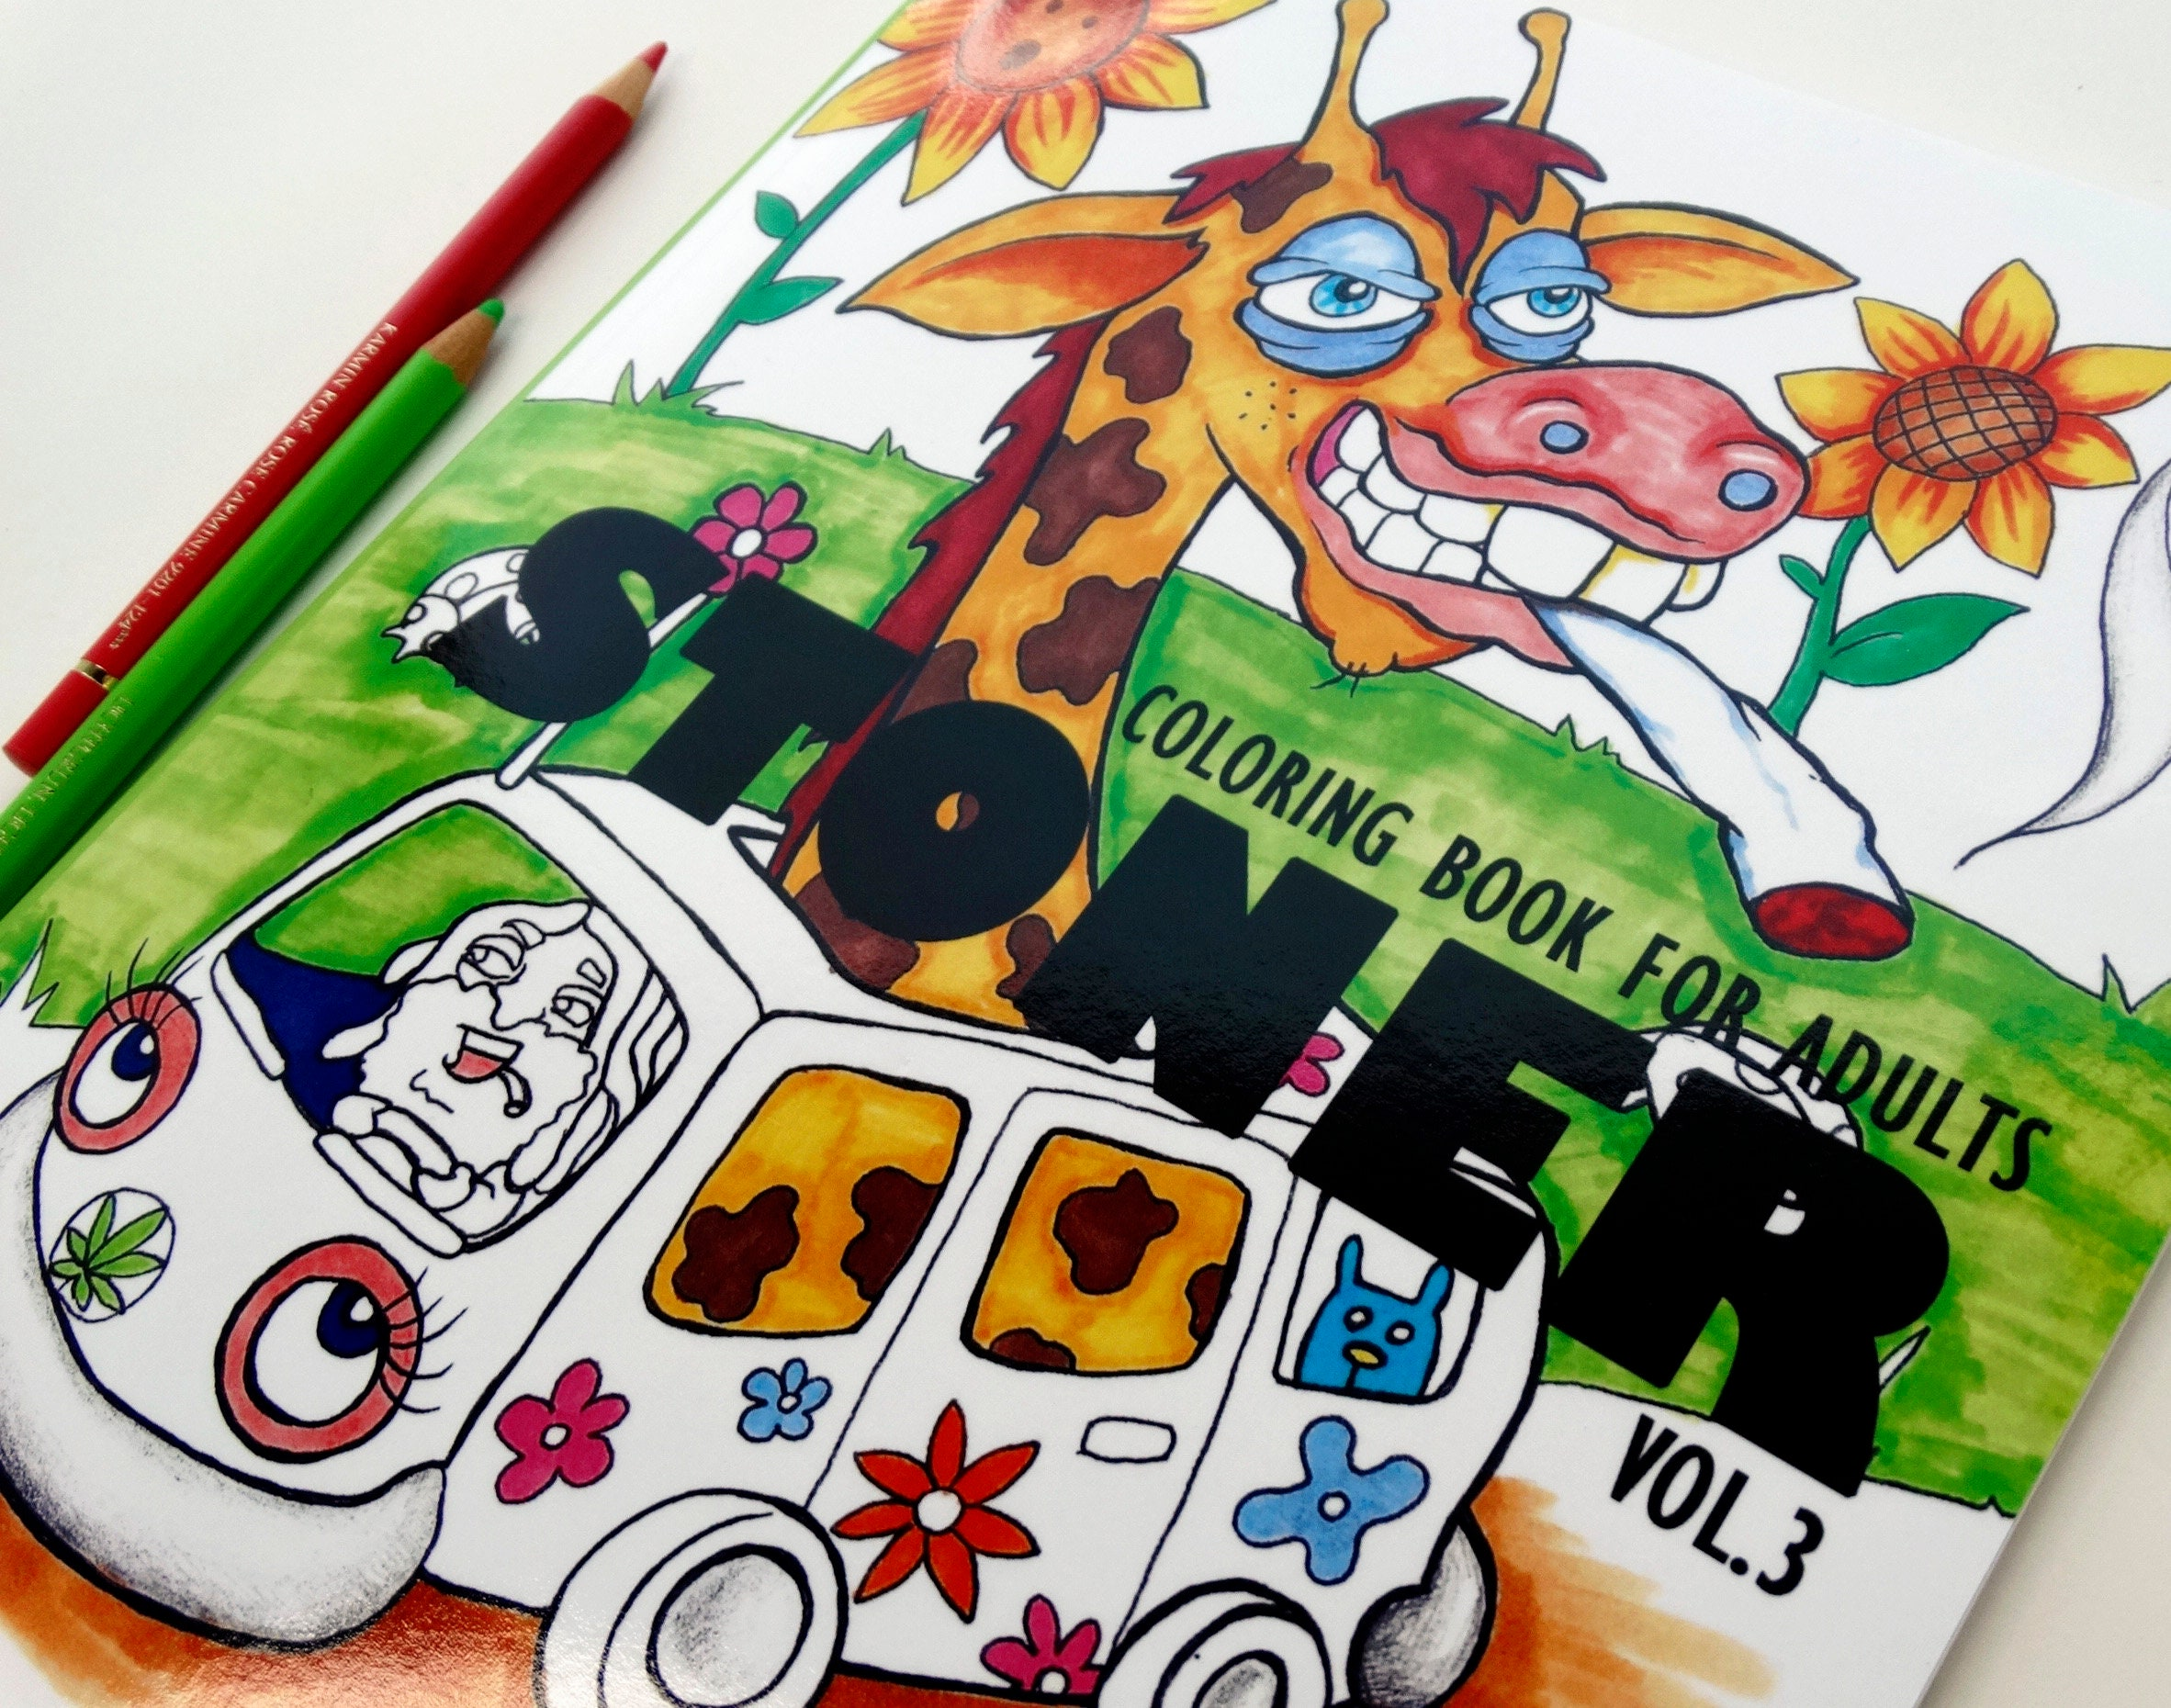 stoner coloring book for adults vol 3 weed stuff